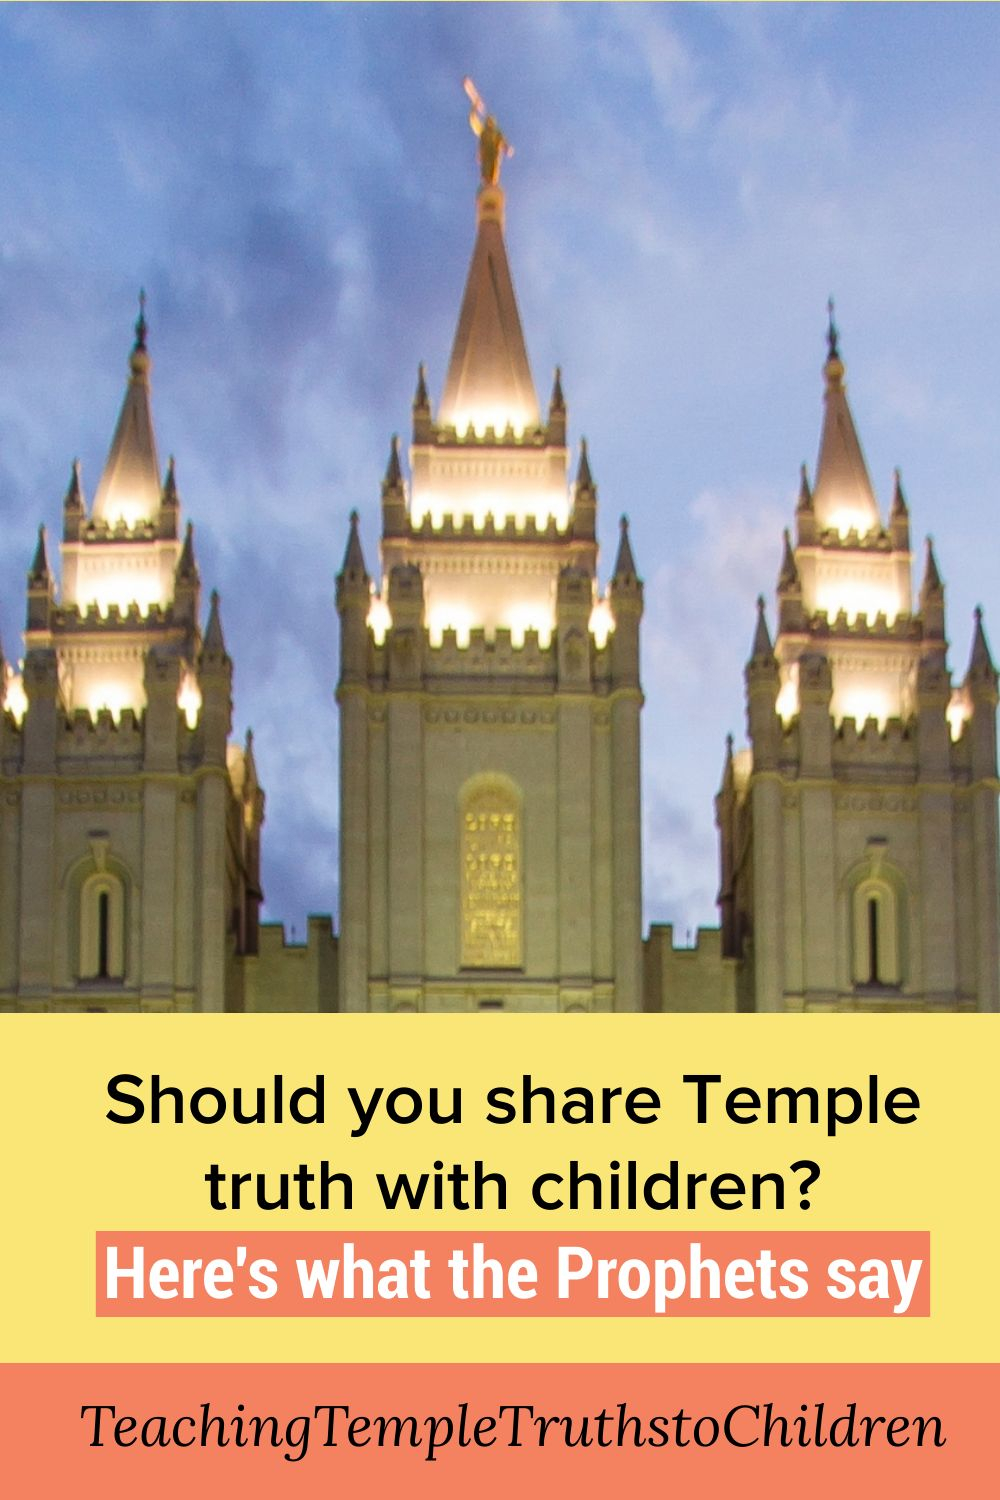 Should you teach children Temple Truths? Here's what the Prophets say